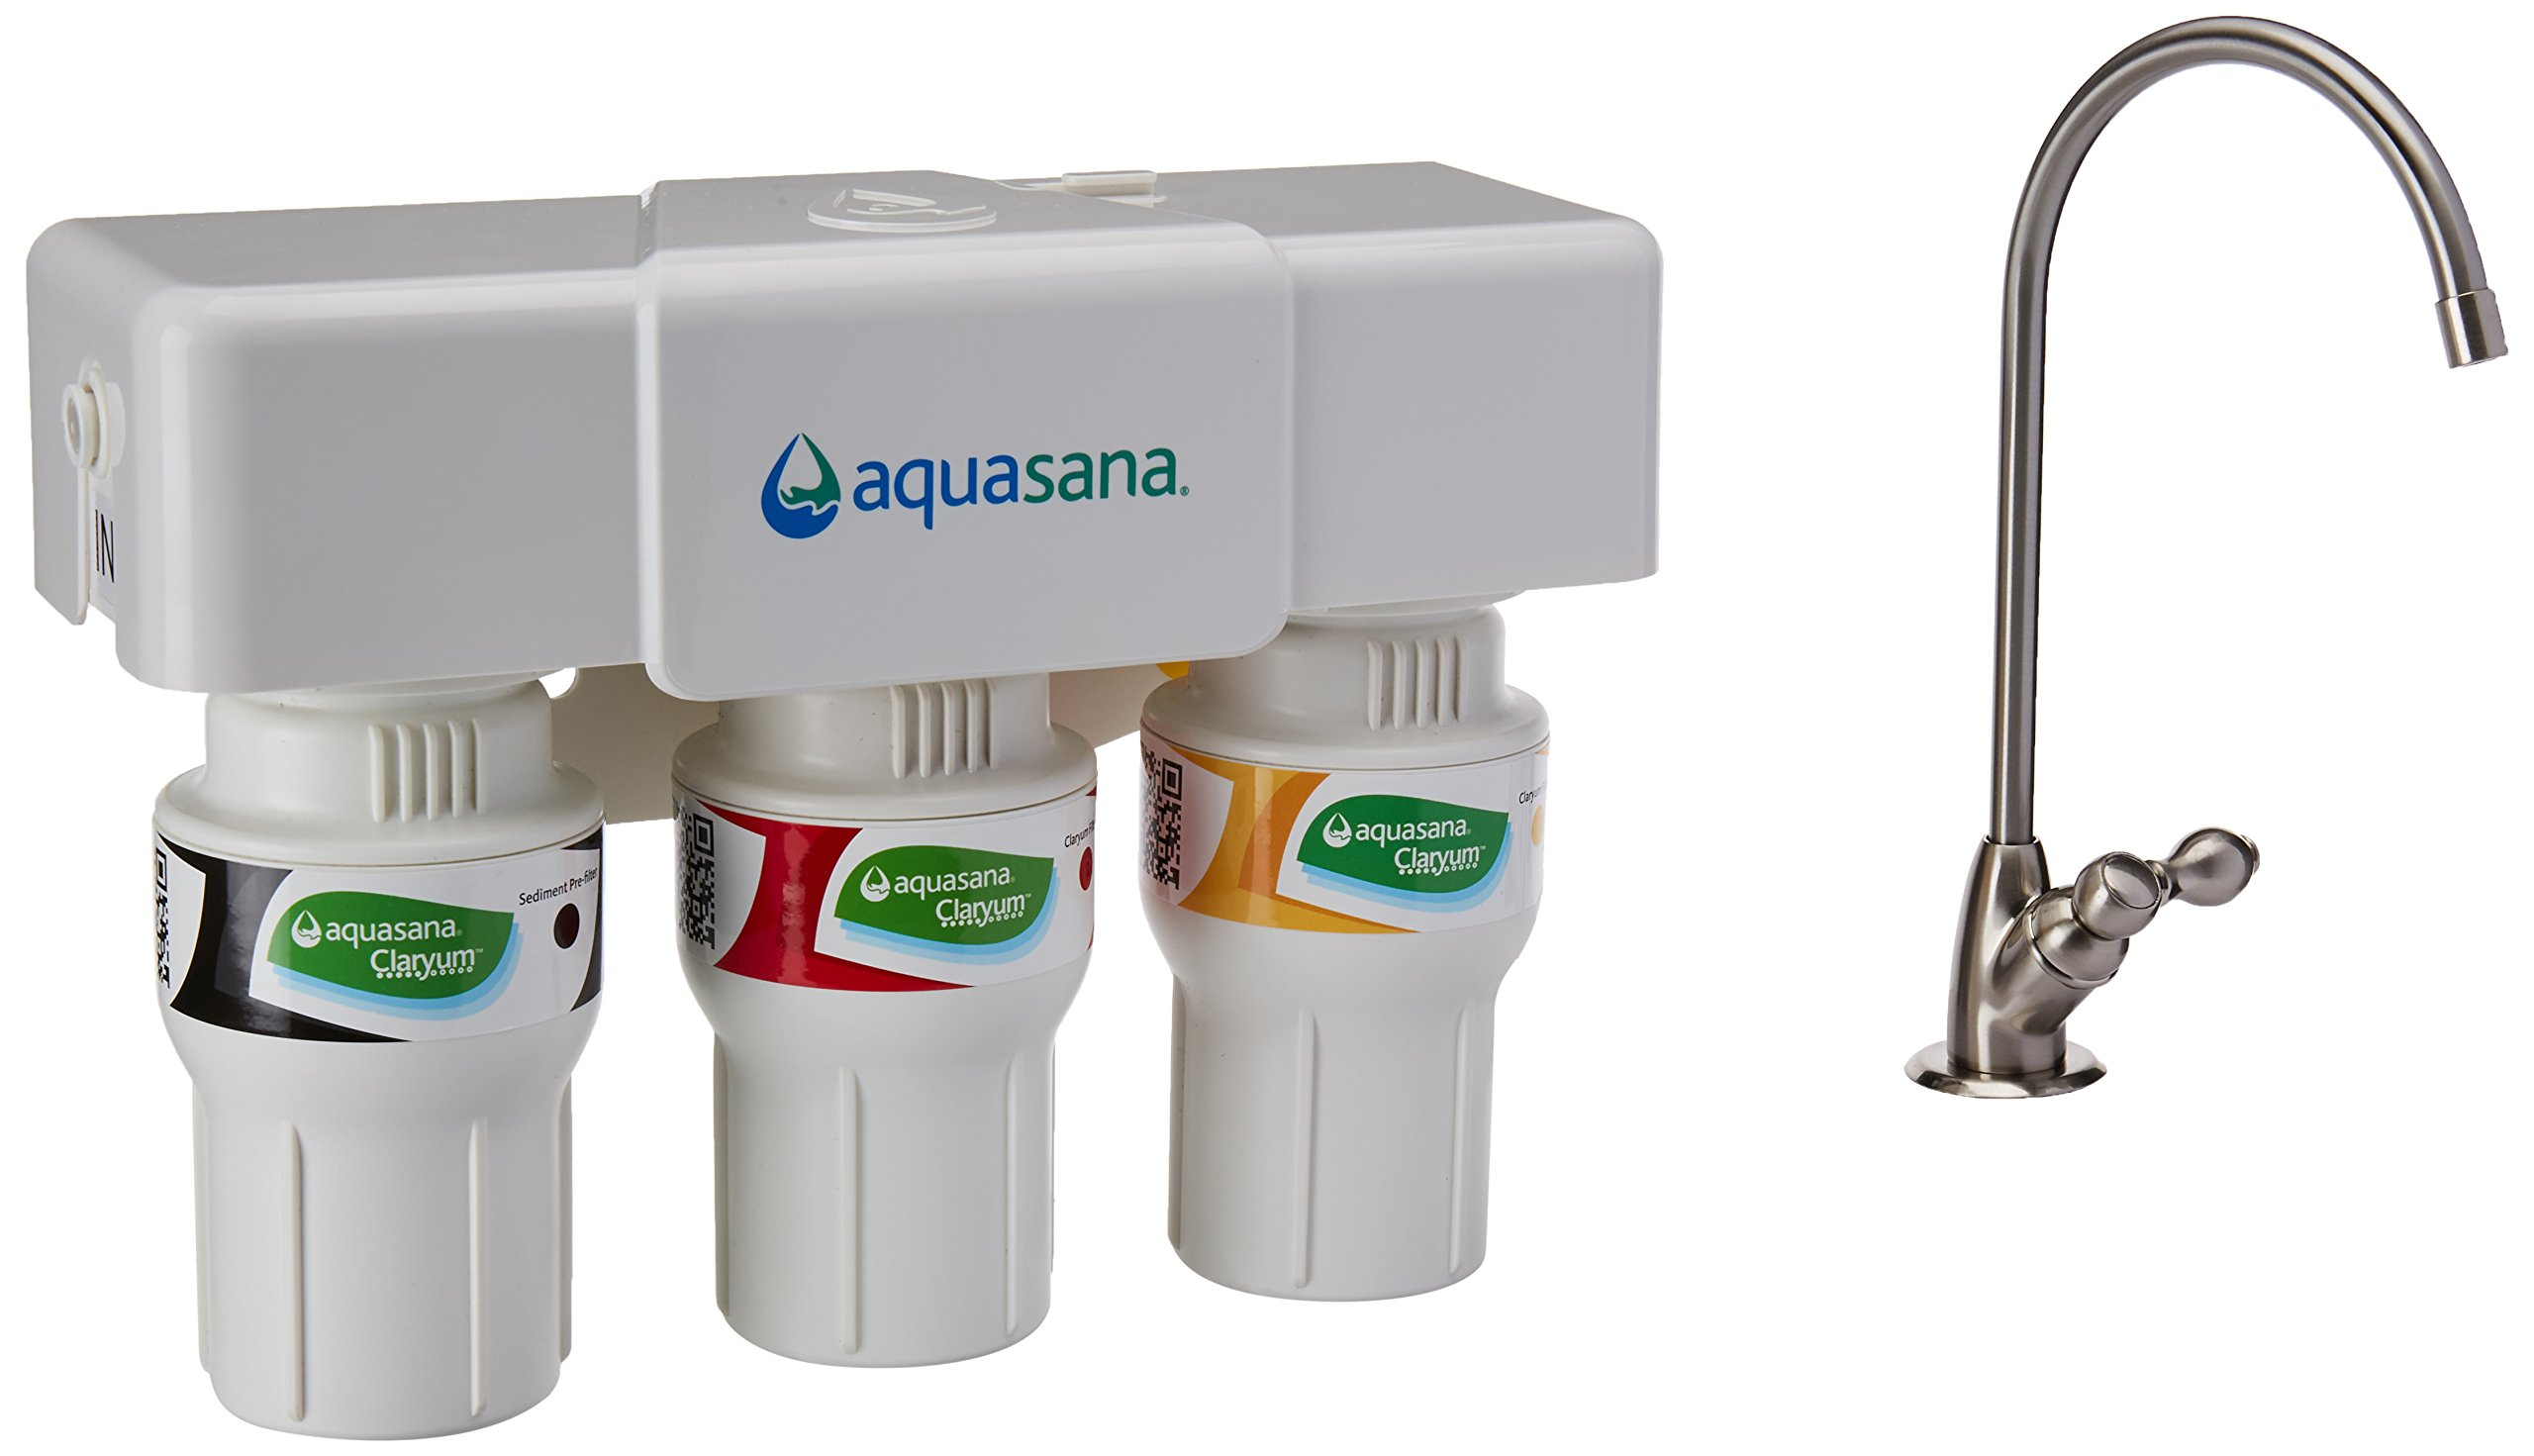 Aquasana 3-Stage Under Sink Water Filter System - Kitchen Counter Claryum Filtration - Filters 99% Of Chloramine - Brushed Nickel - AQ-5300